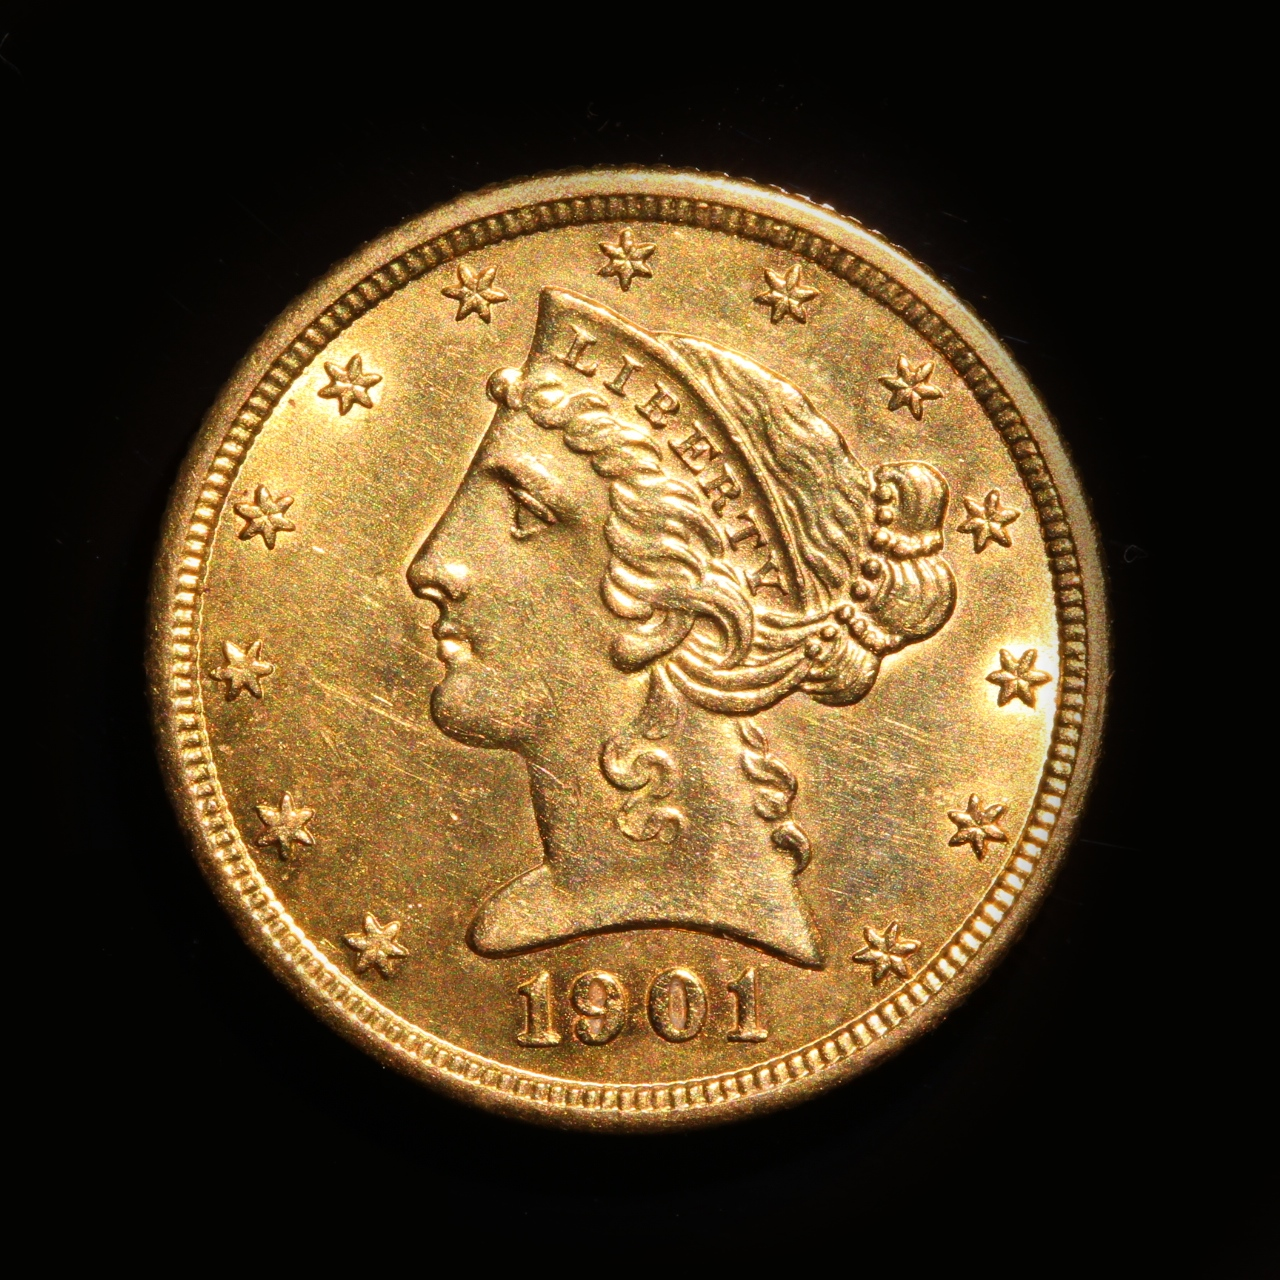 1901 Liberty 5 Dollars Gold (Half Eagle), AU-55